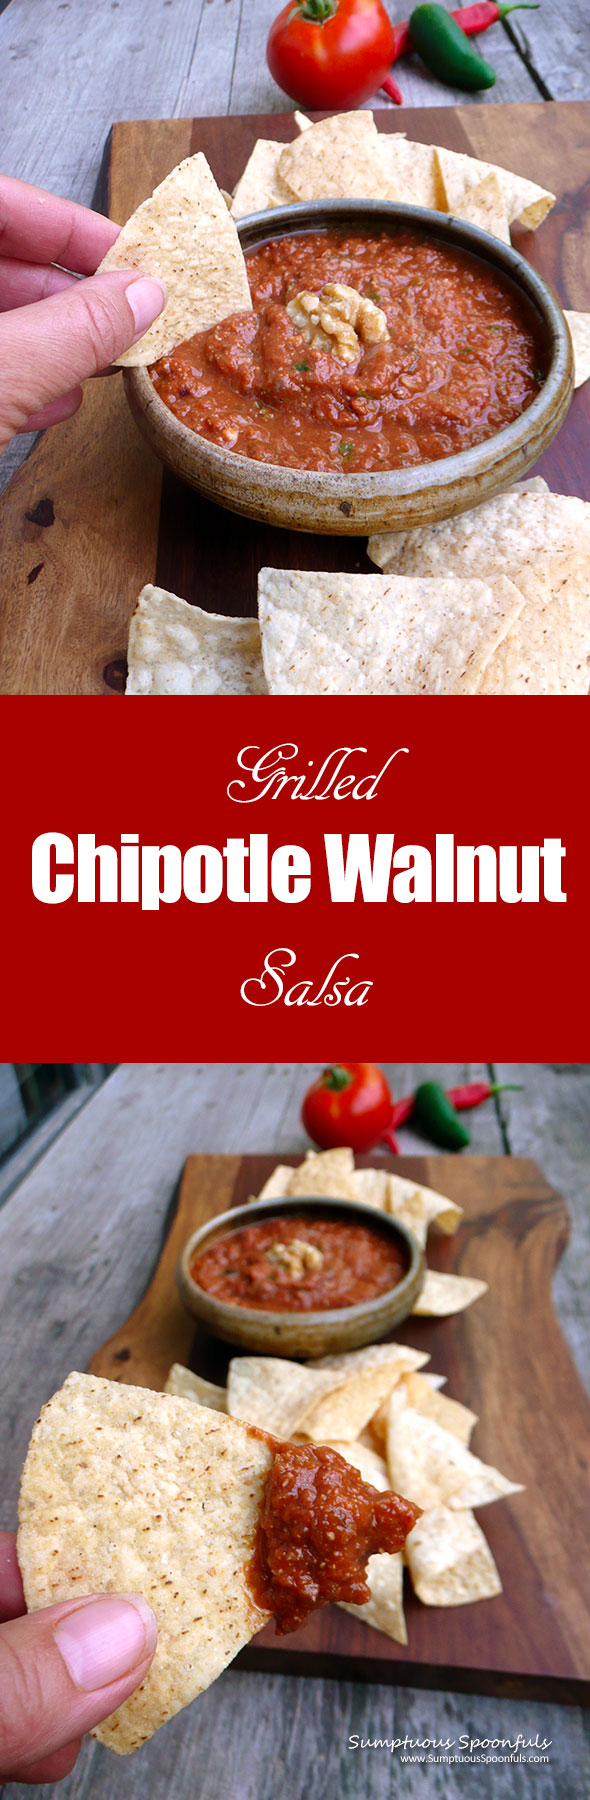 Grilled Chipotle Walnut Salsa ~ Sumptuous Spoonfuls #spicy #smoky #salsa #recipe